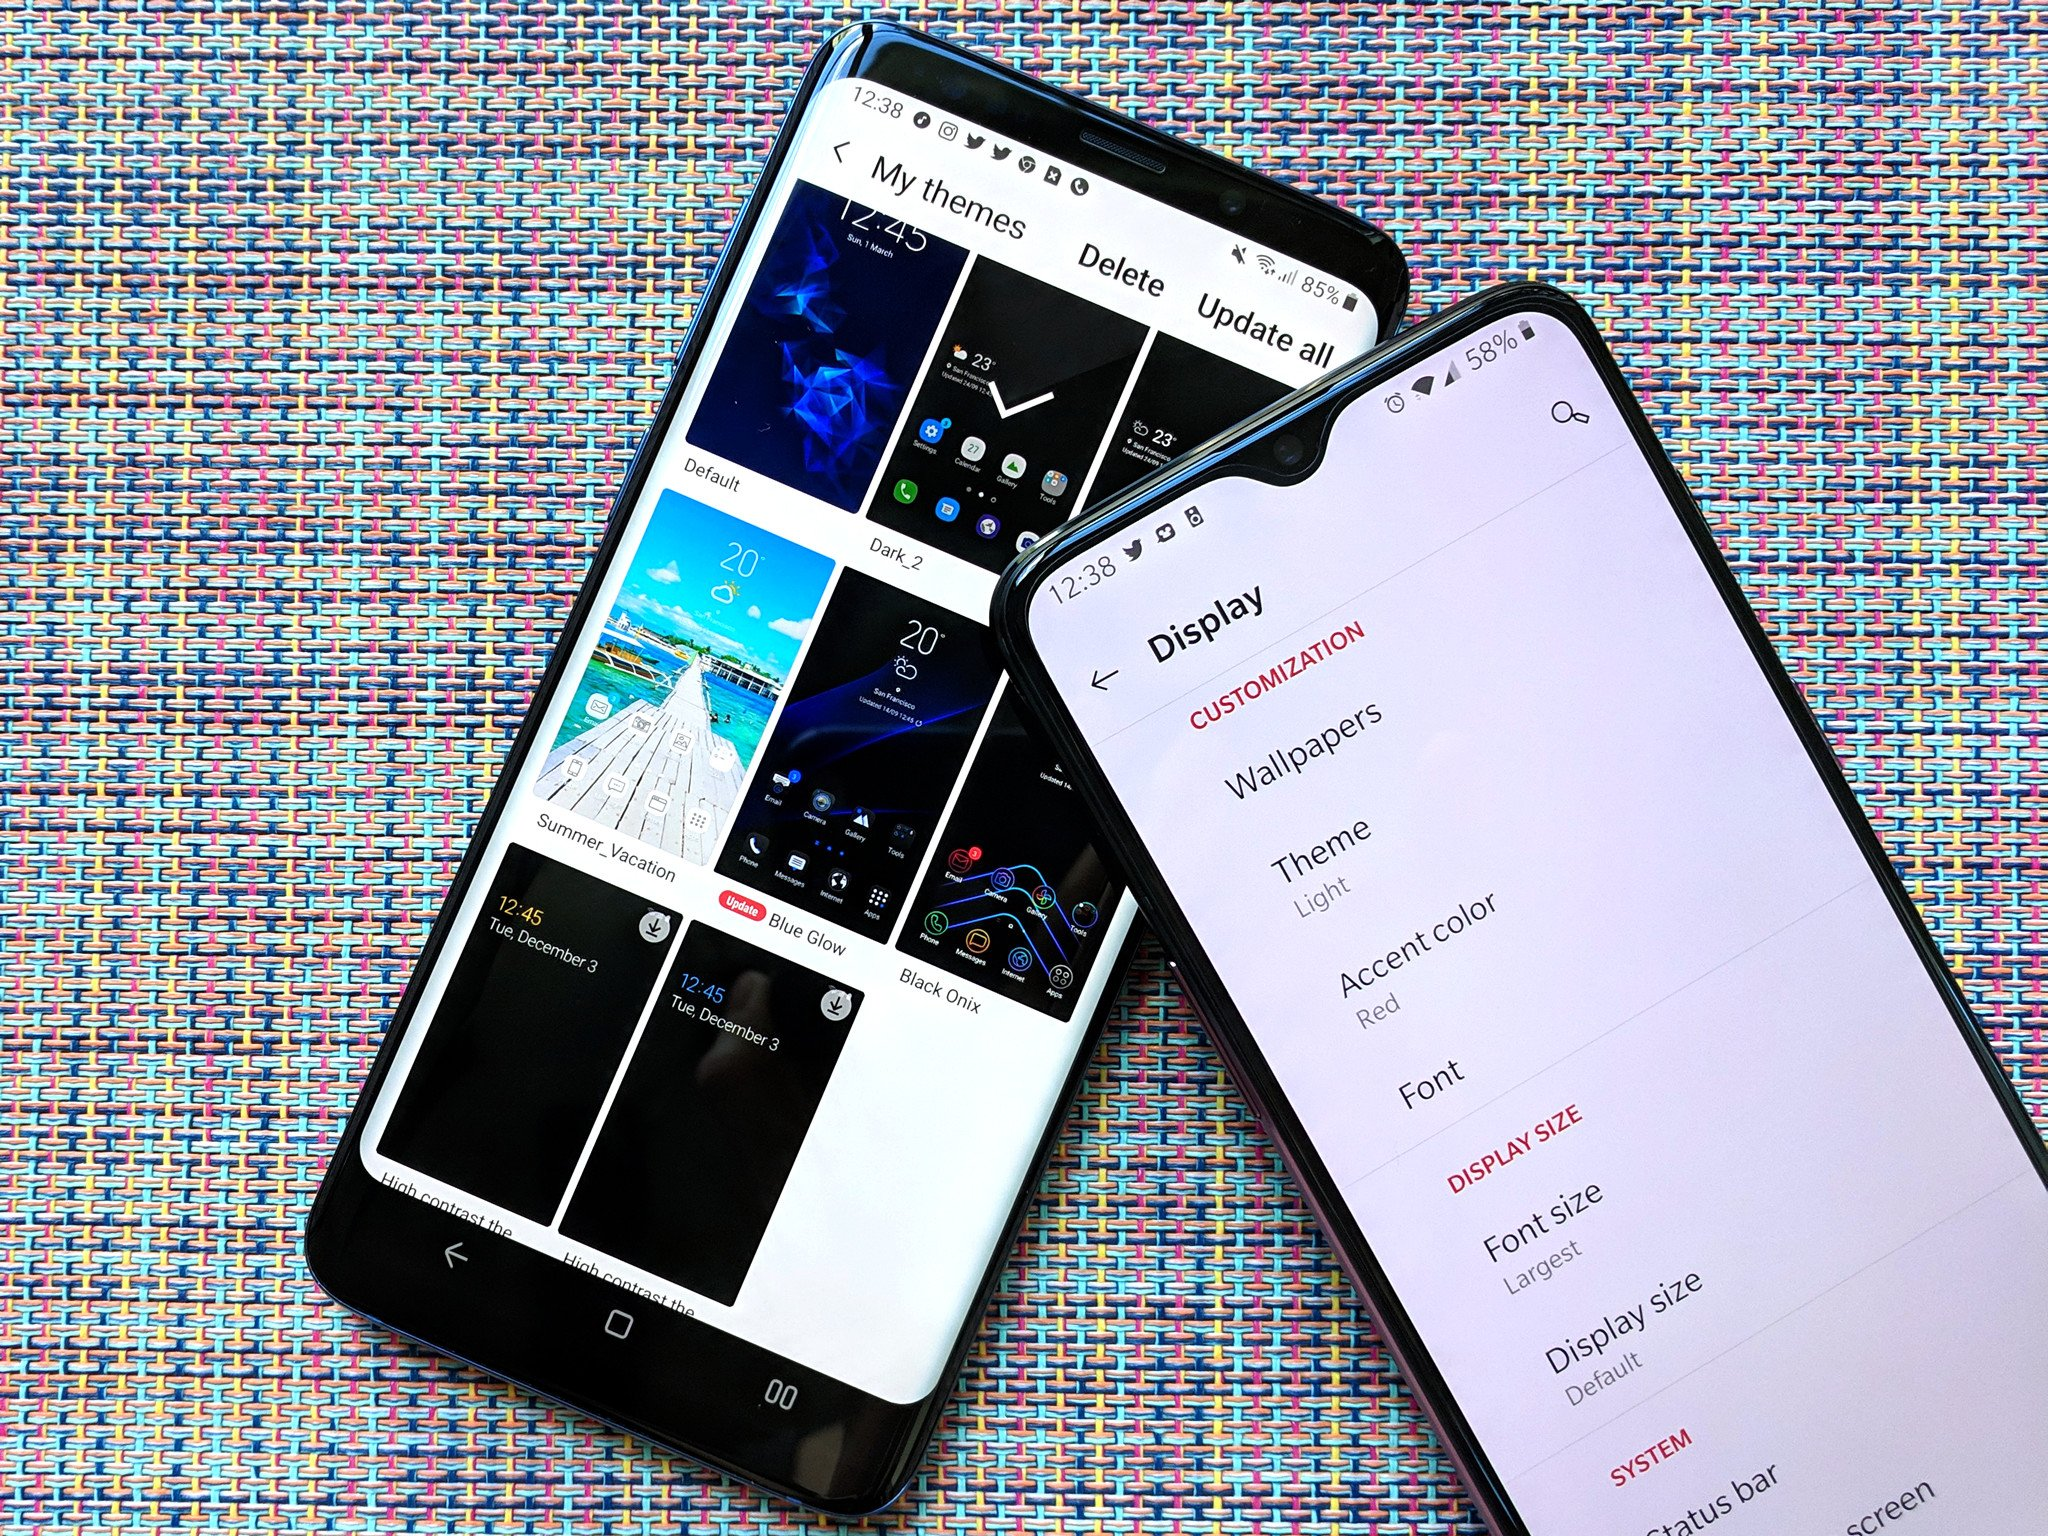 Top 9 Things To Do After Setting Up Your Android Phone